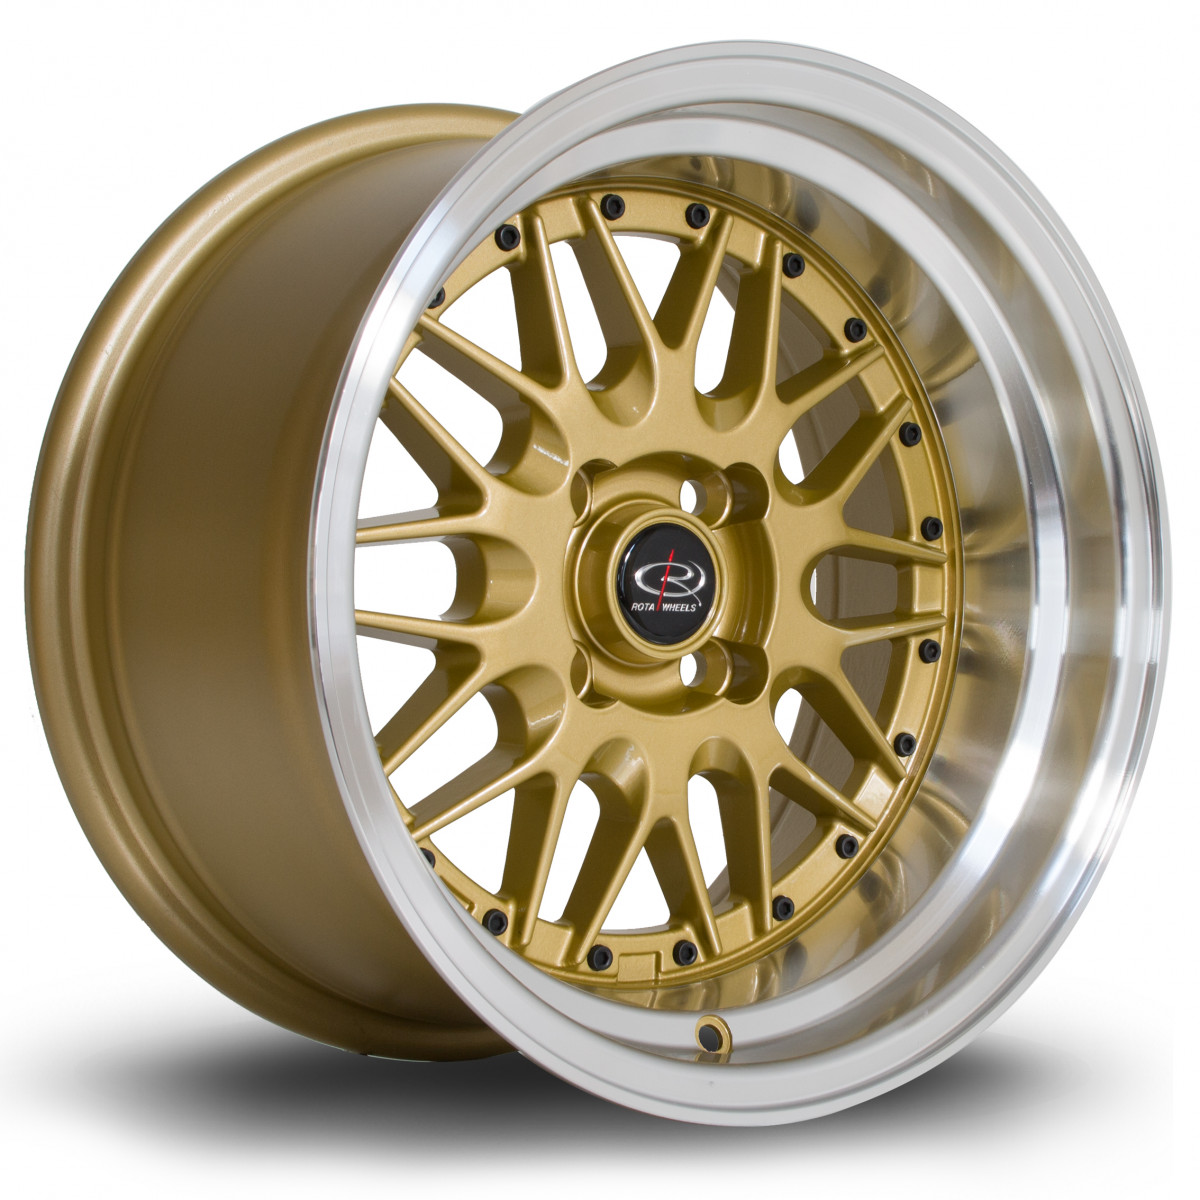 Kensei 15x8 4x100 ET0 Tommy Gold with Polished Lip